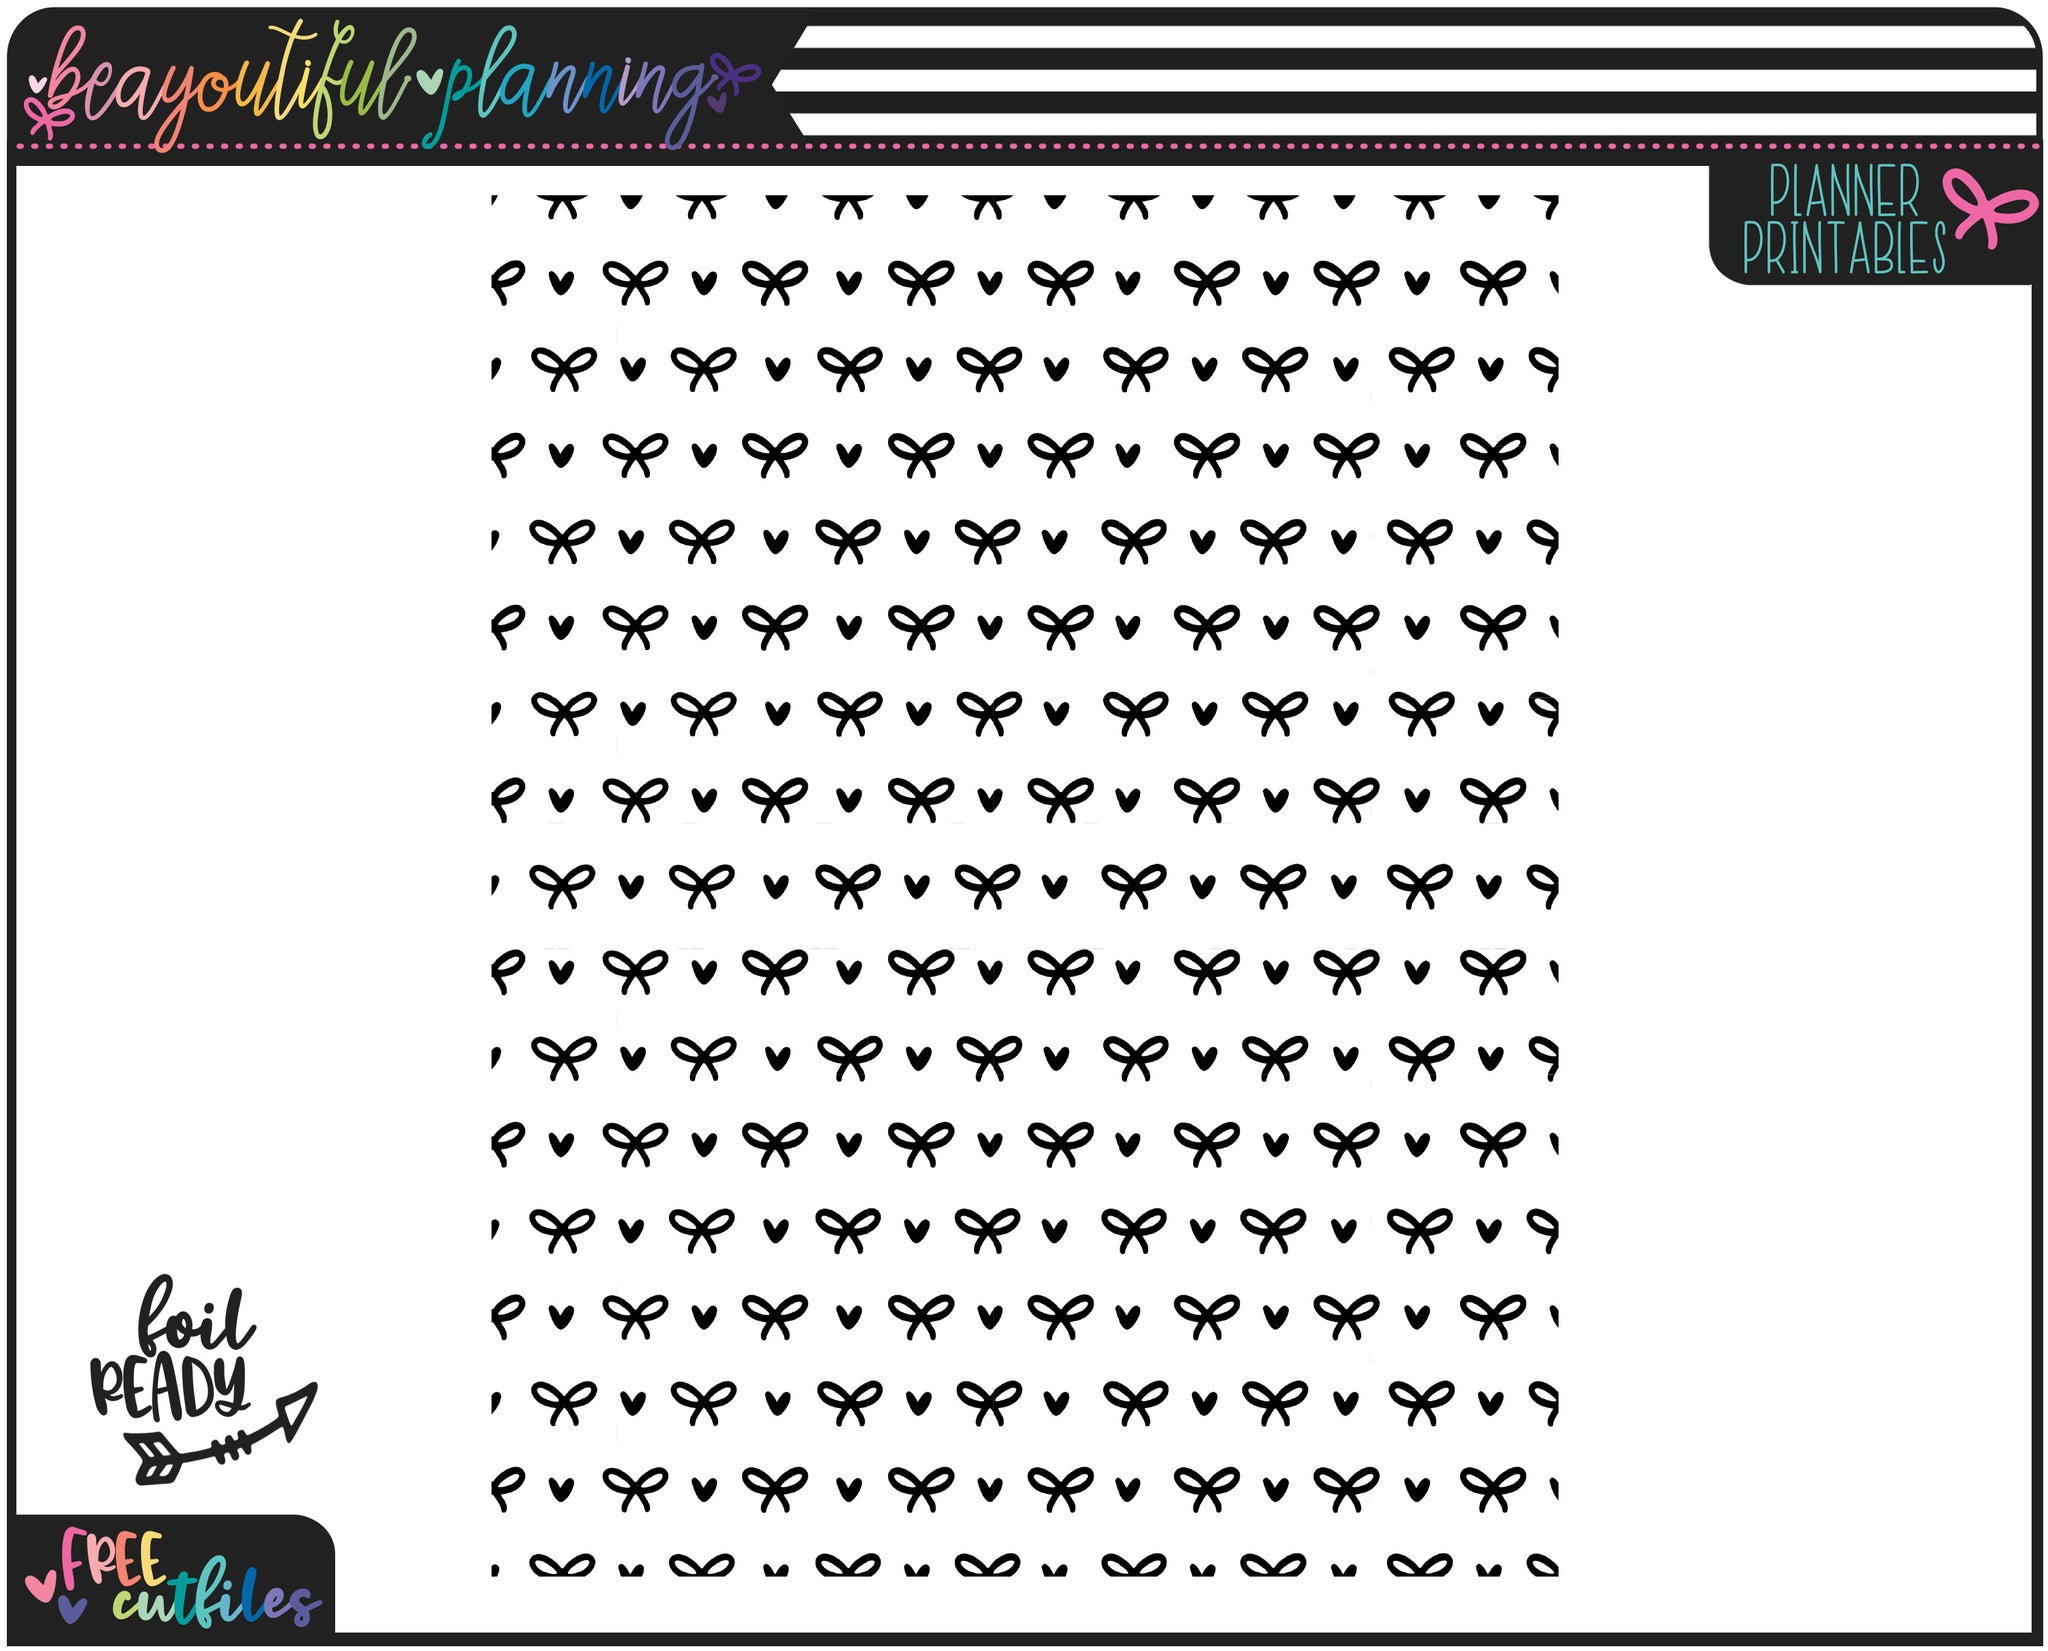 Hearts and Bows Planner Printable Vellum or Acetate